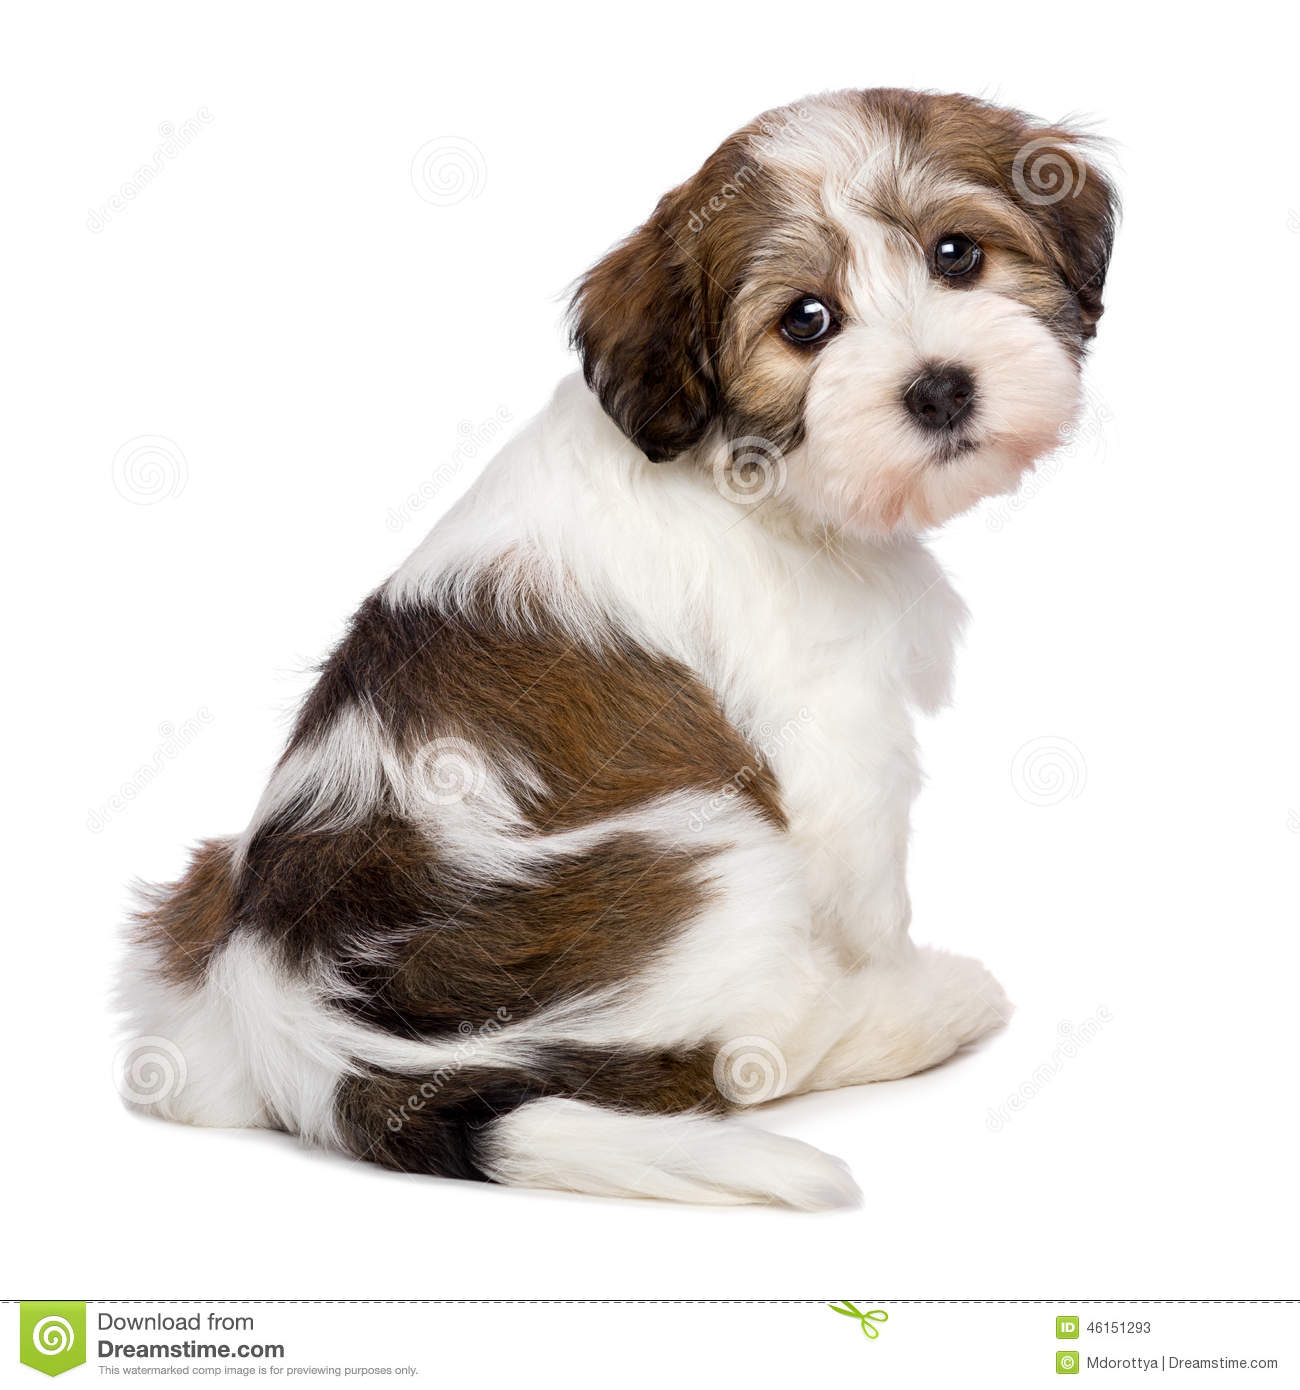 Puppy Dog Sitter Cute Havanese Puppy Is Sitting And Photographed From